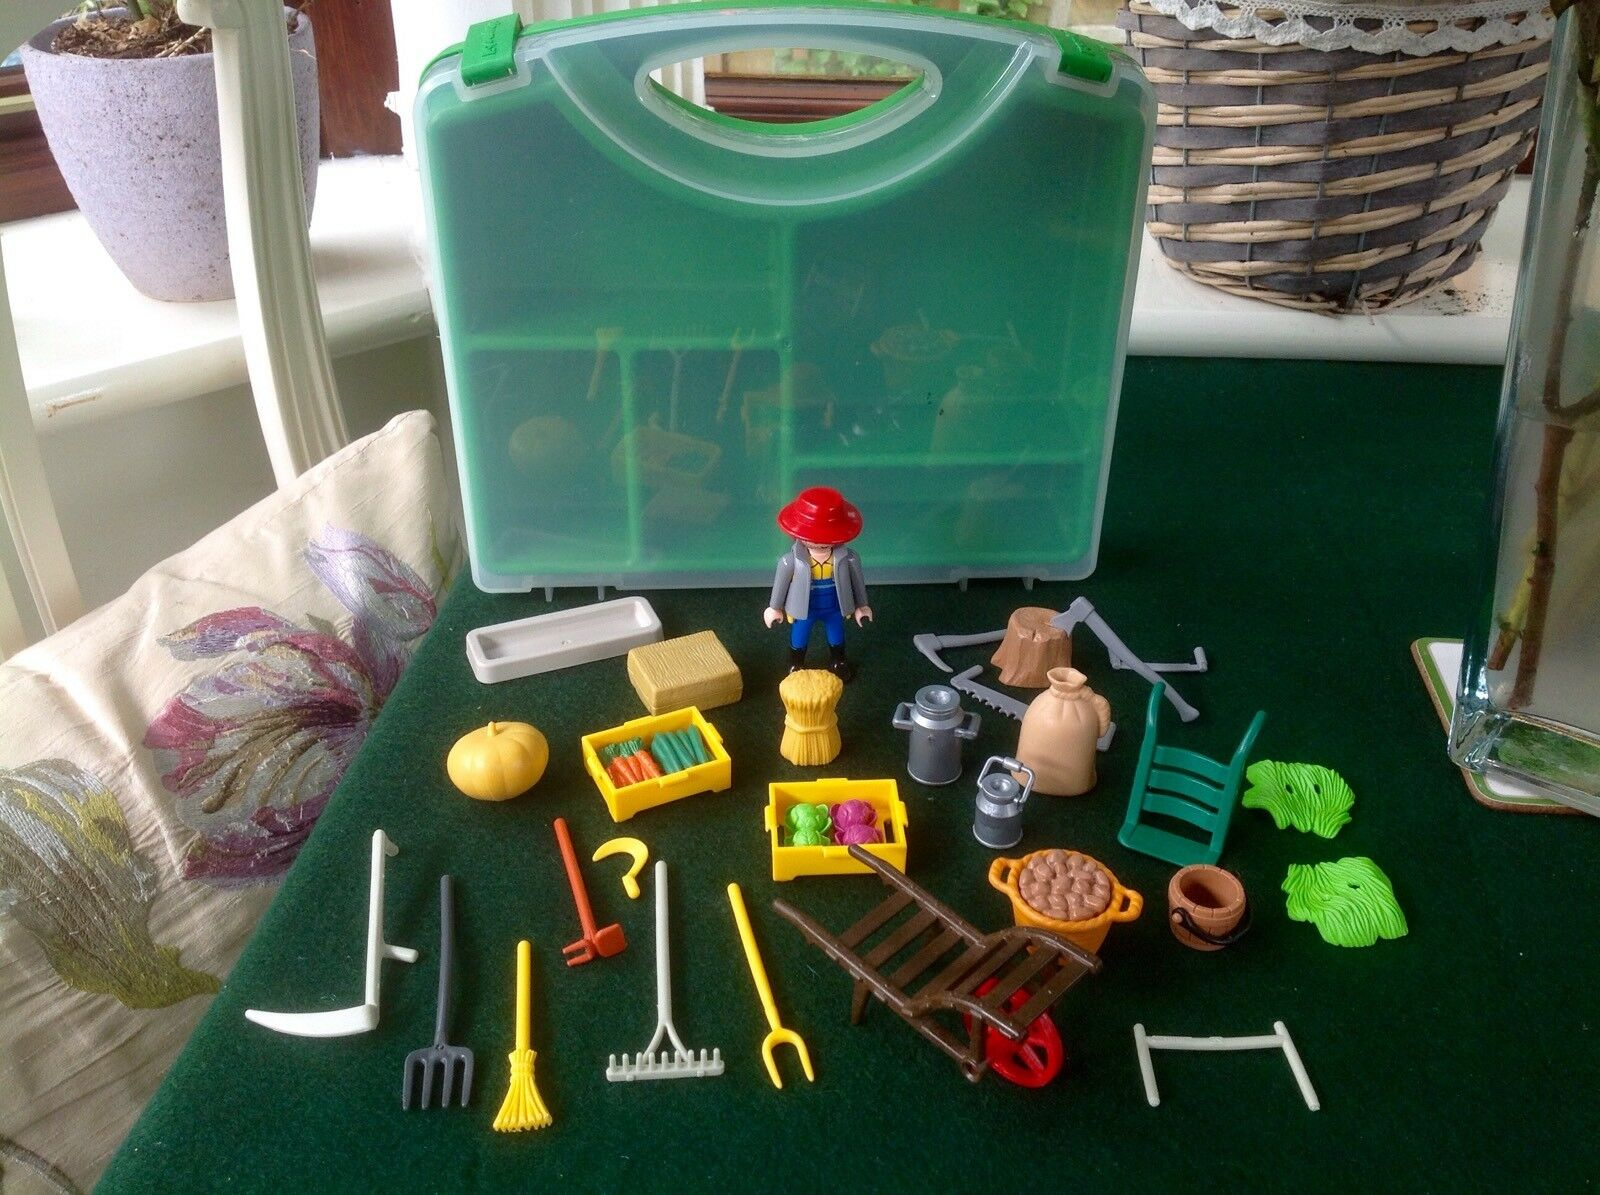 Playmobil Playmobil Playmobil 4179 Farmer And Farm Accessories Playset With Carry Case - Rare   a1c88f